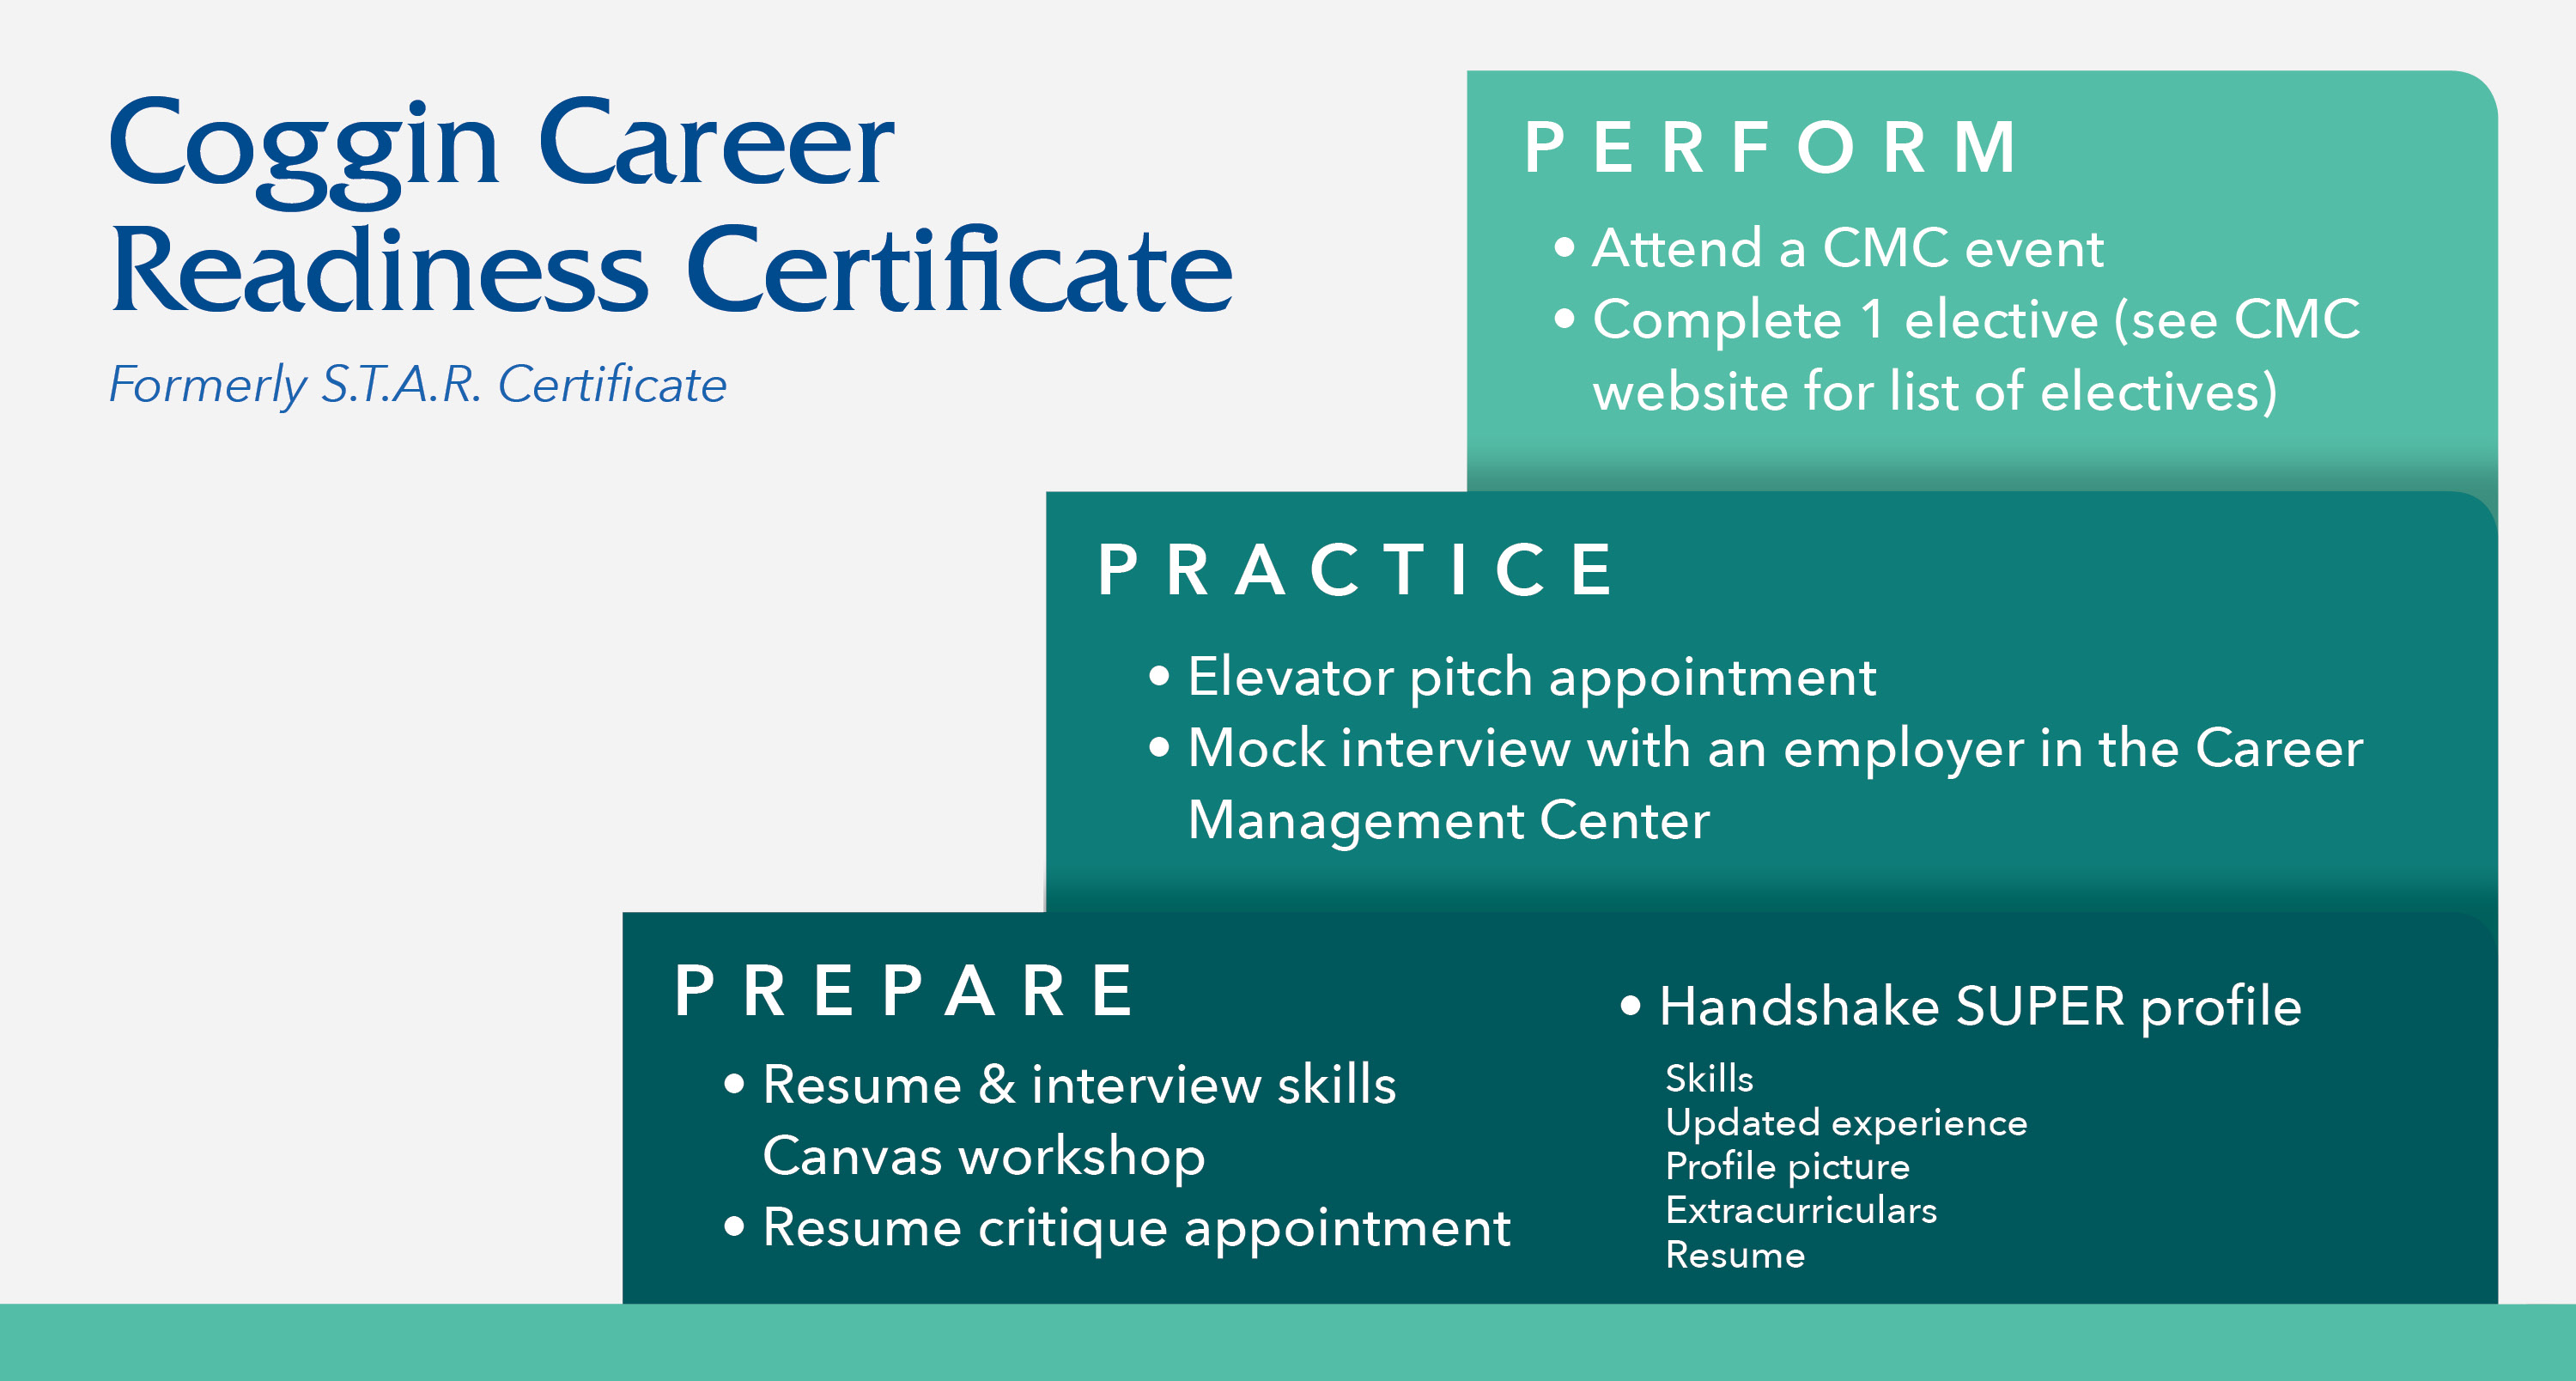 Coggin Career Readiness Certificate - click on image for text description